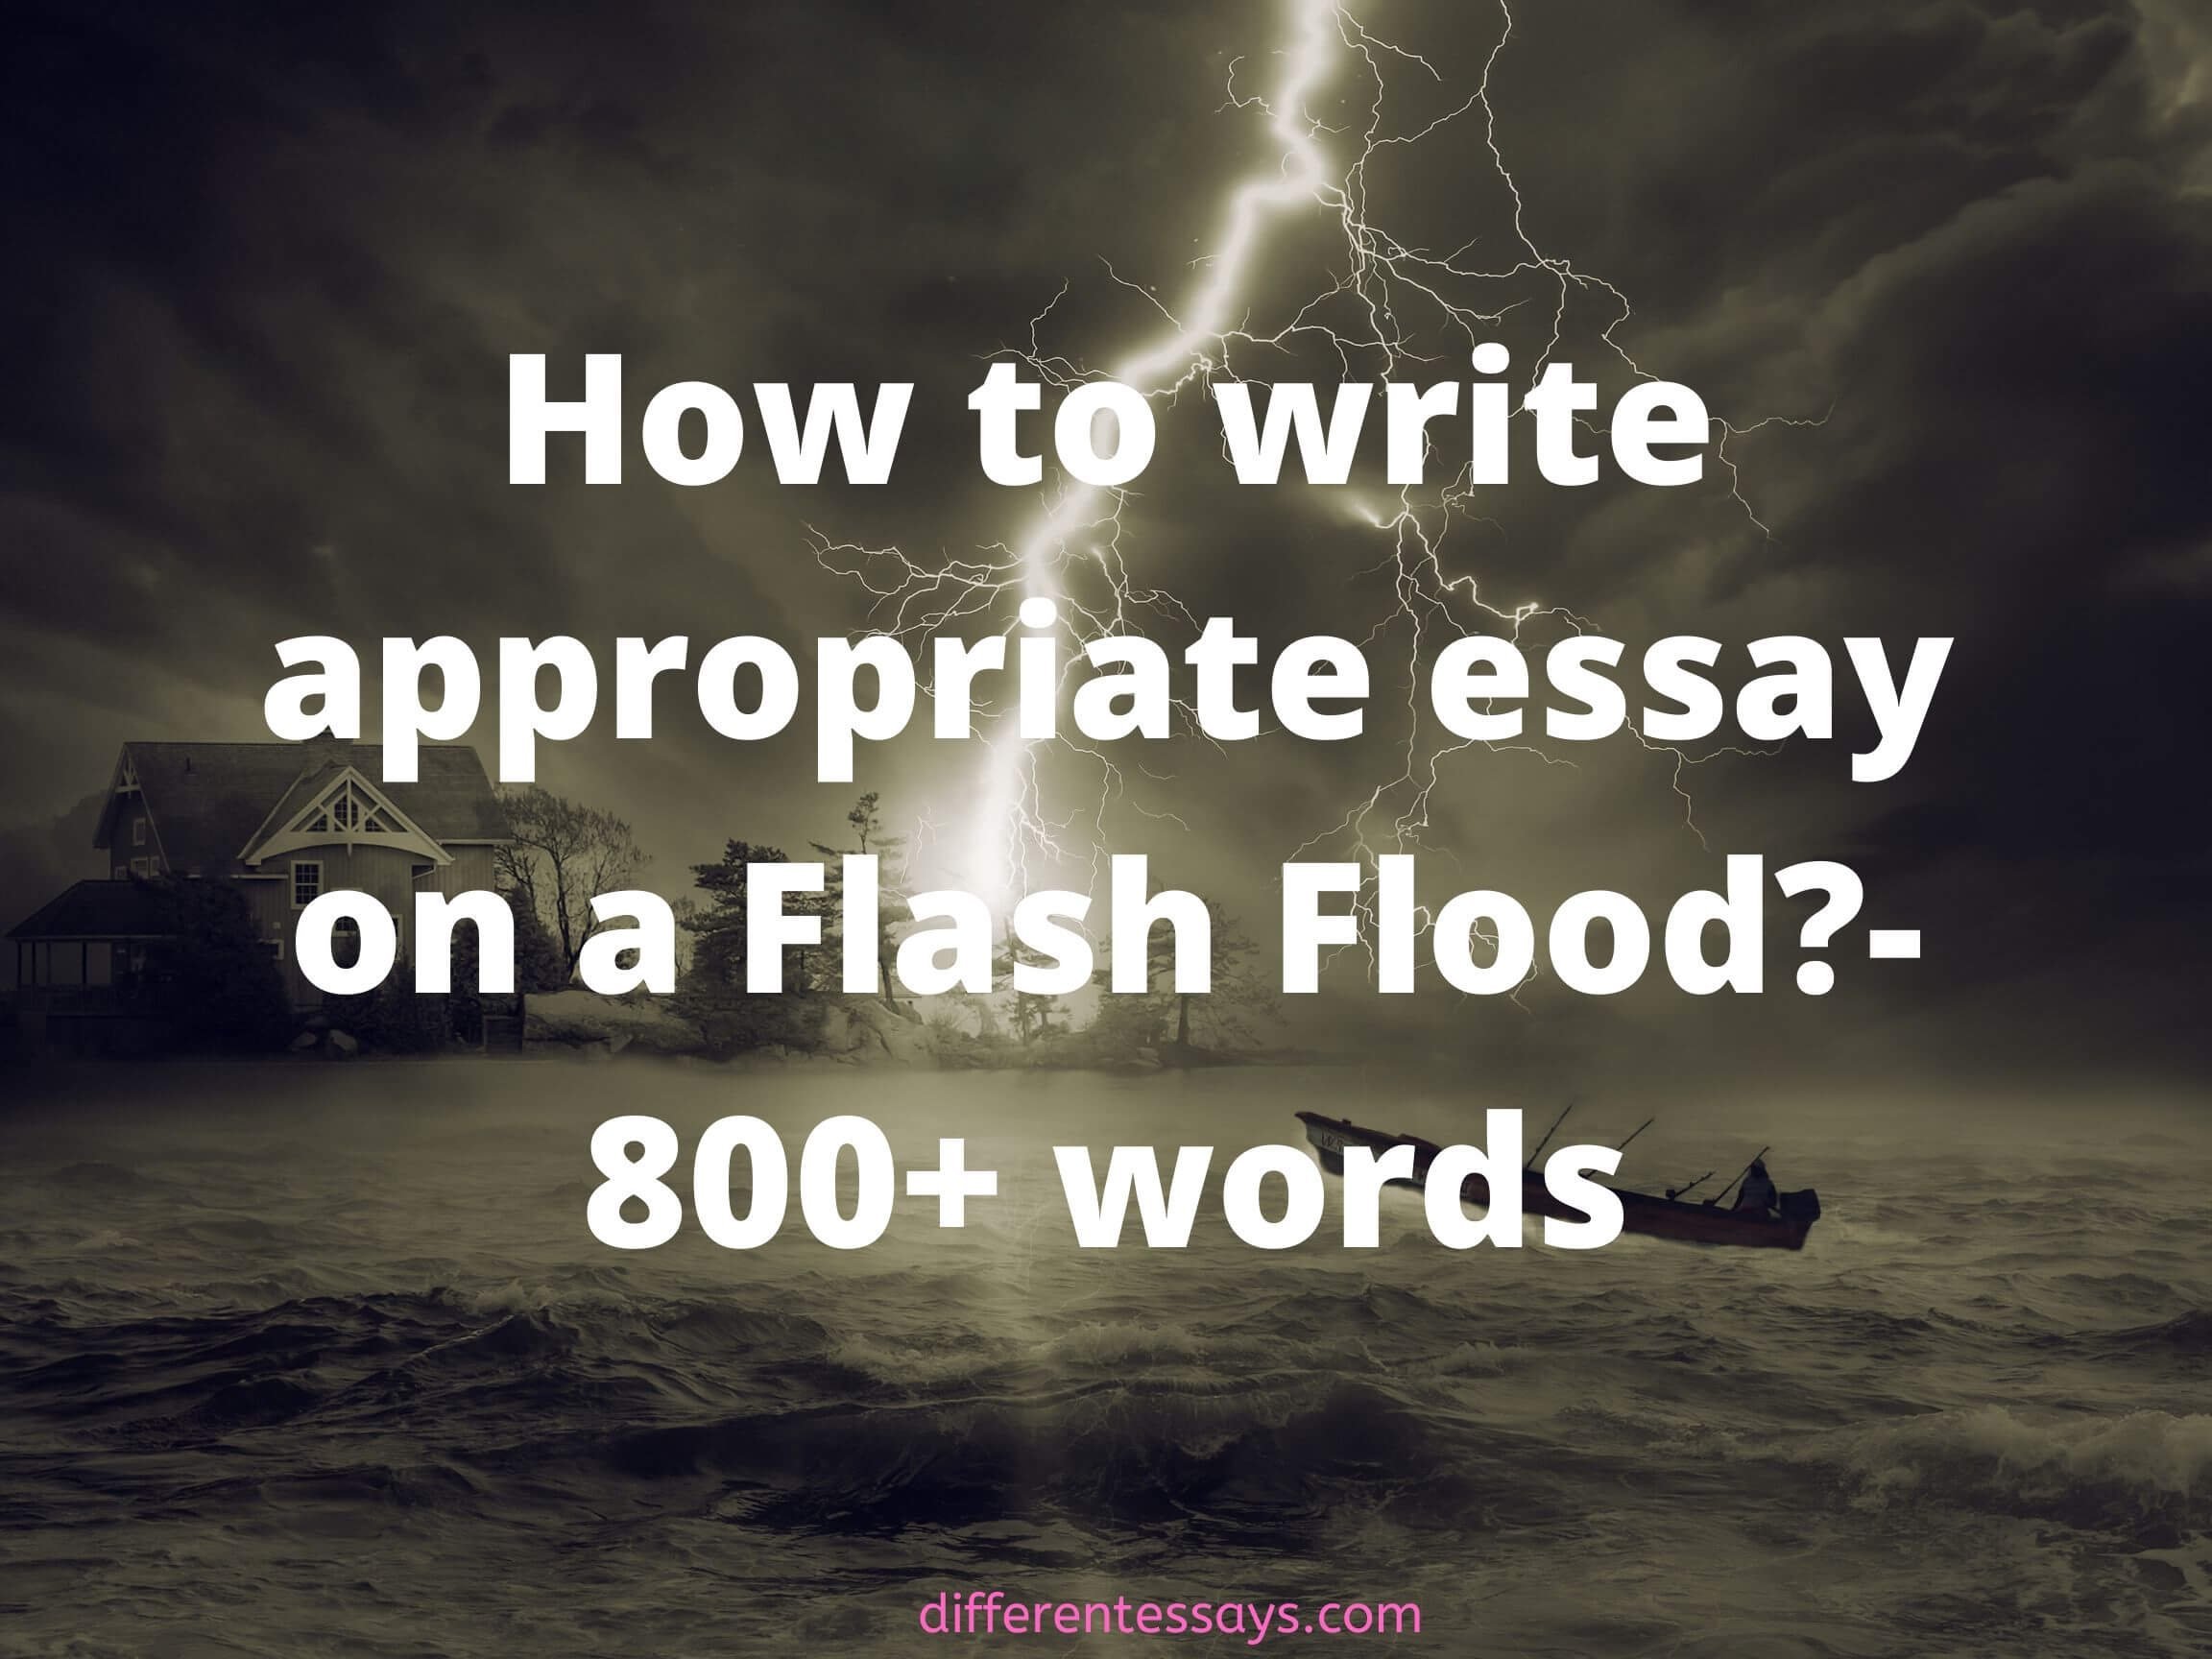 How to write appropriate essay on a Flash Flood?- 800+ words